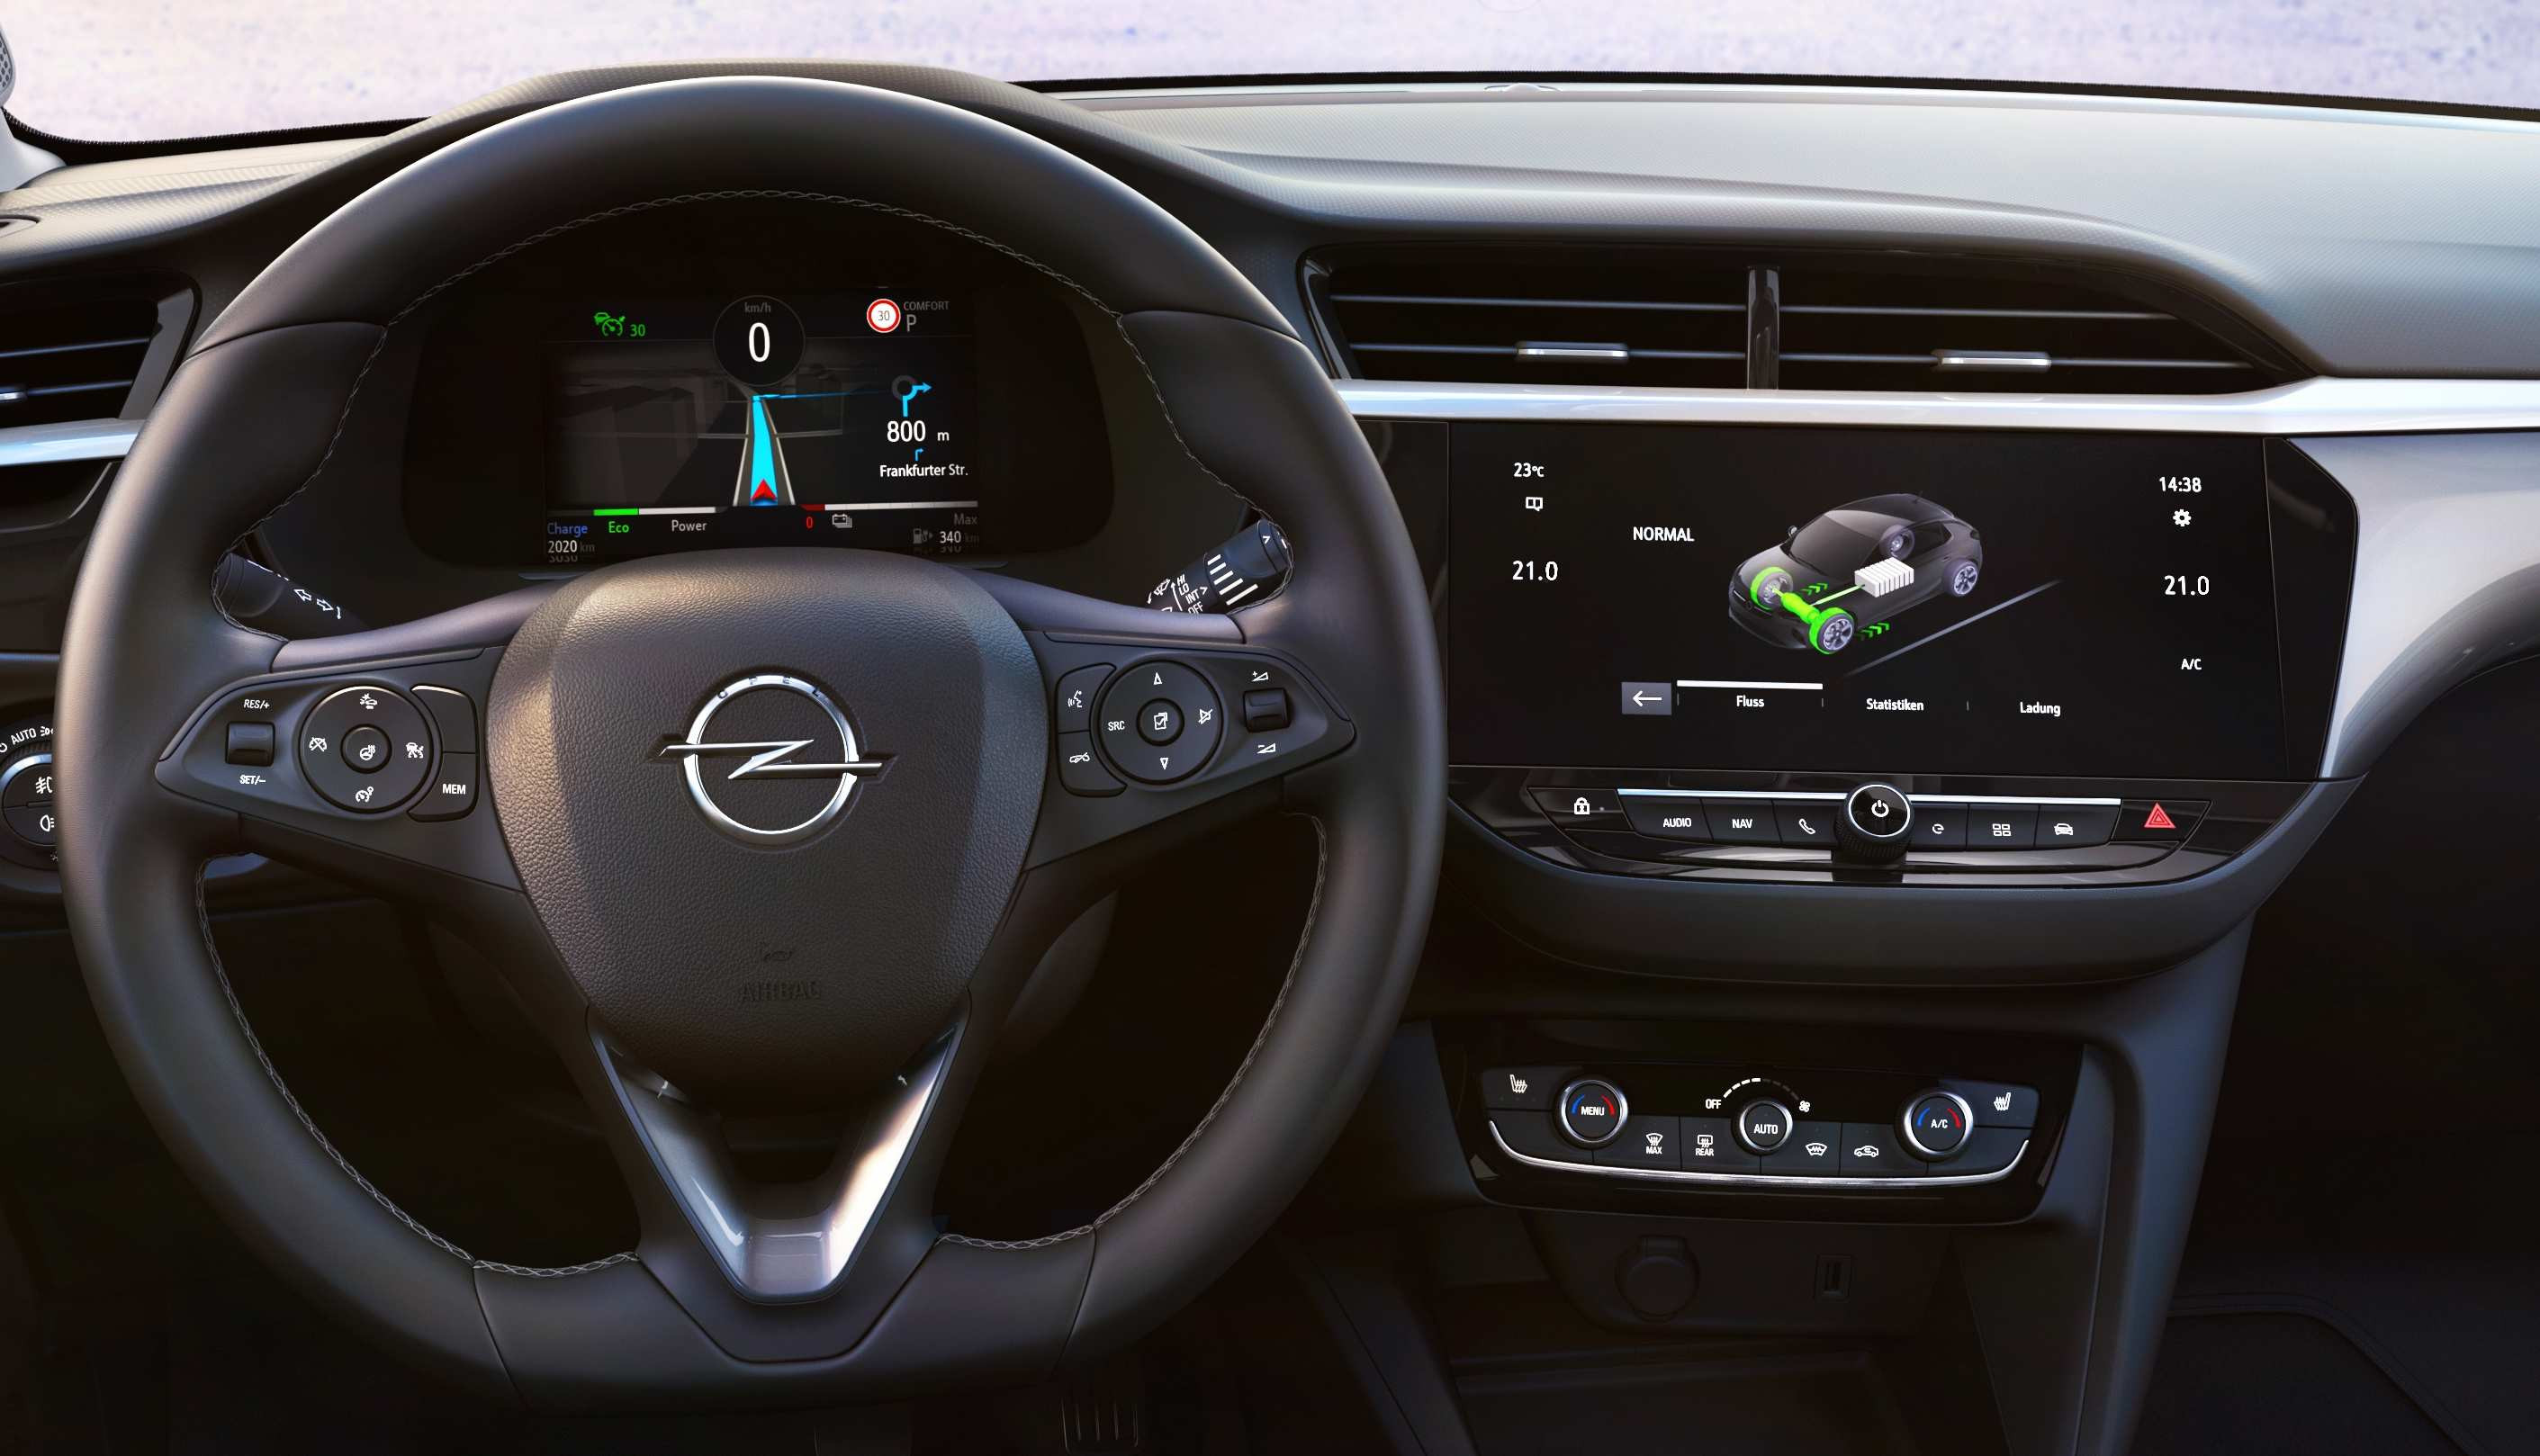 38 New Opel Corsa 2020 Interior Concept And Review